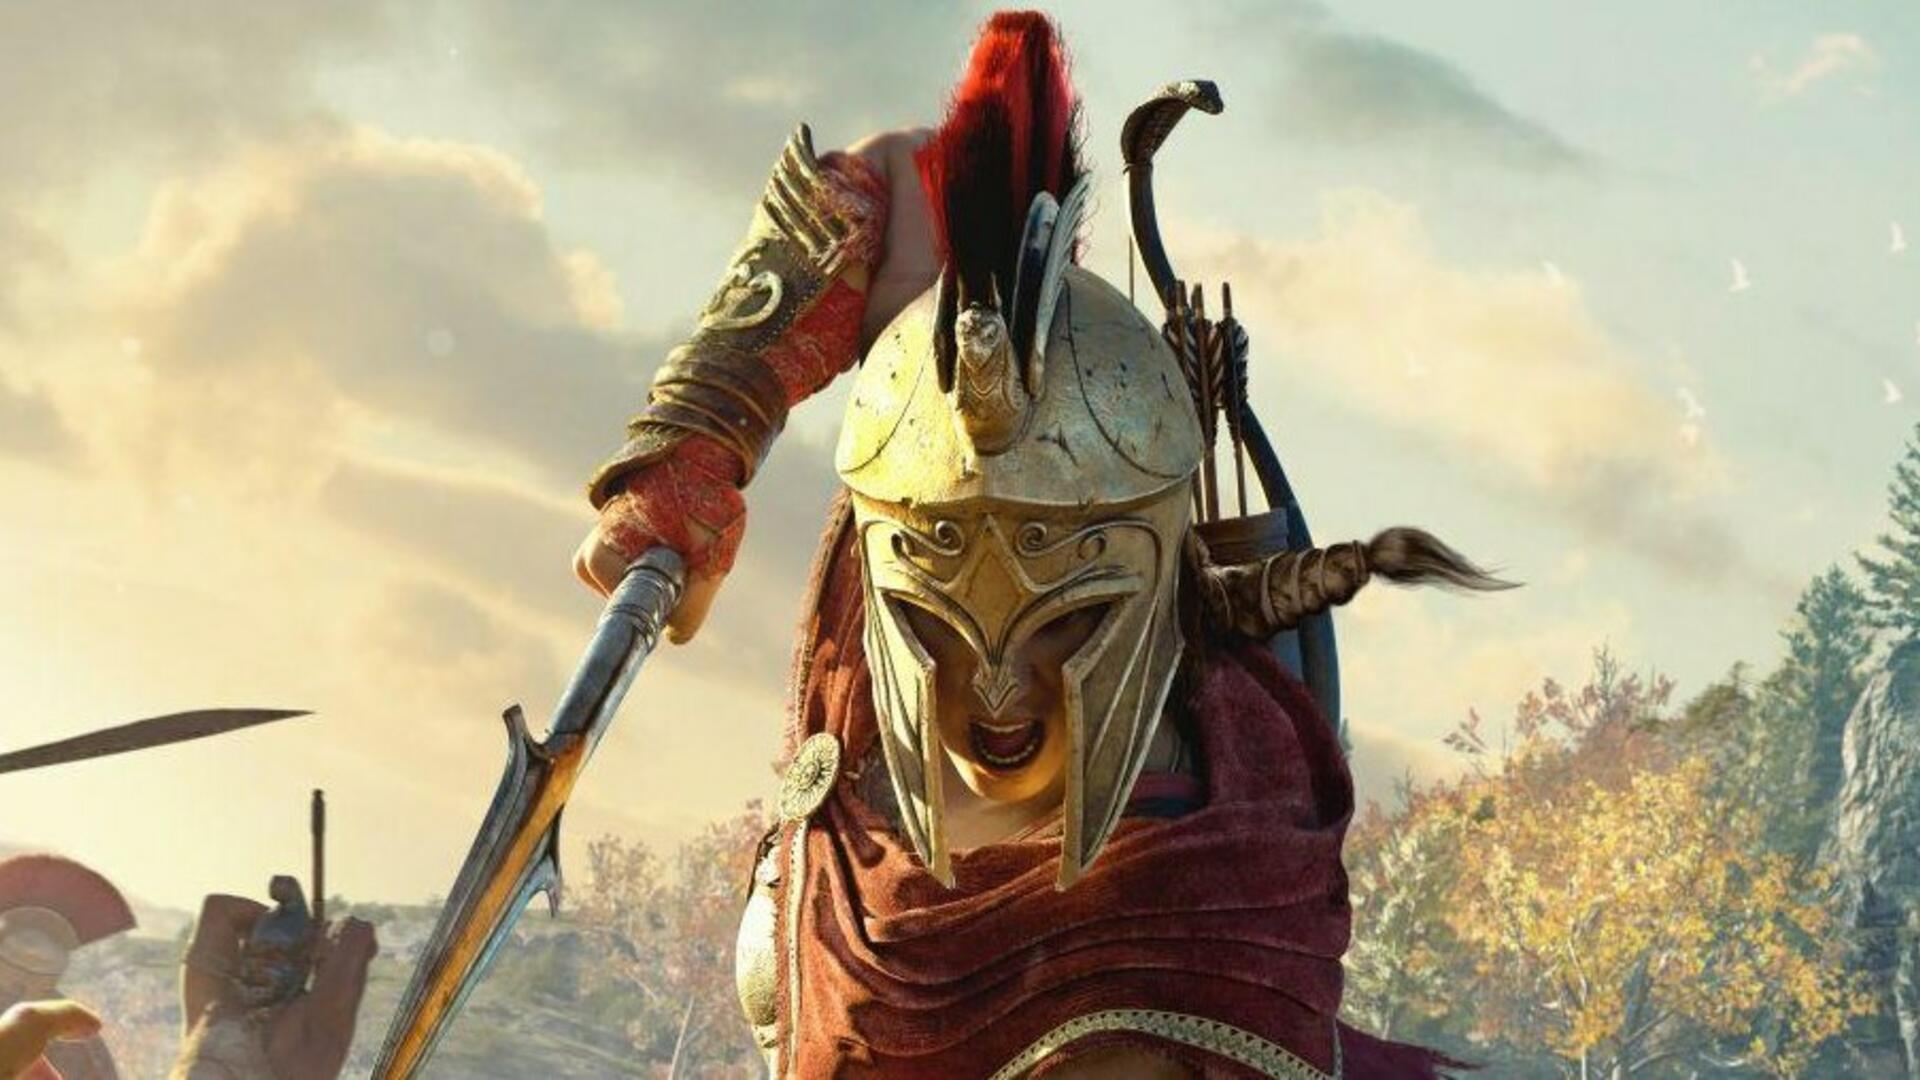 Assassin's Creed Odyssey Tips and Tricks, Beginner's Guide, Controls Layout